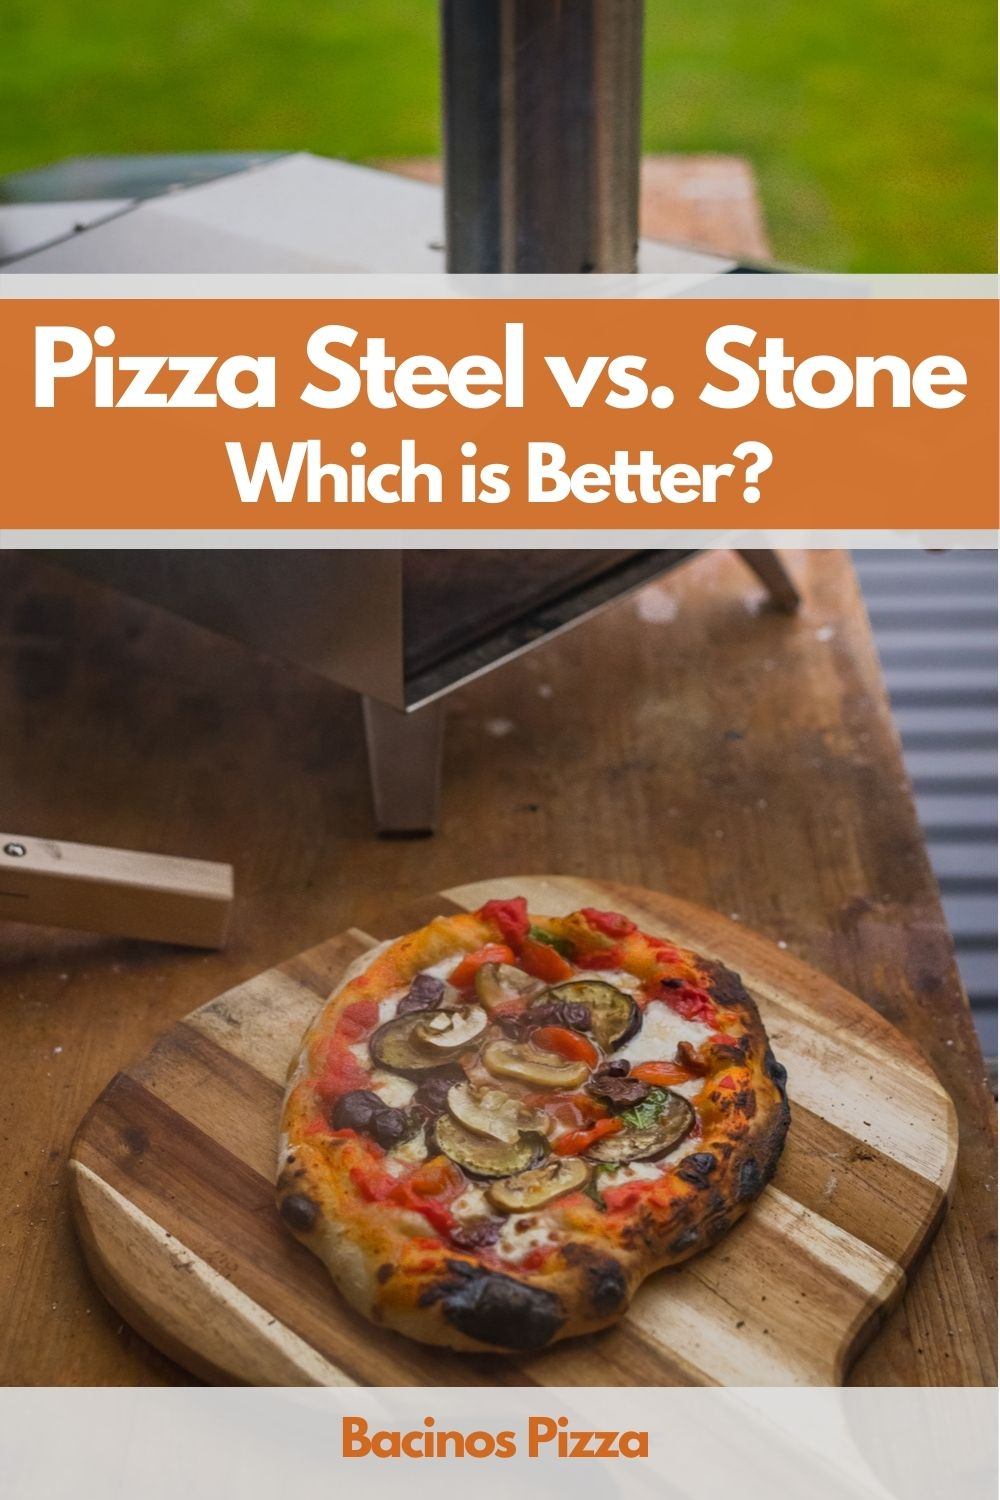 Pizza Steel vs. Stone pin 2